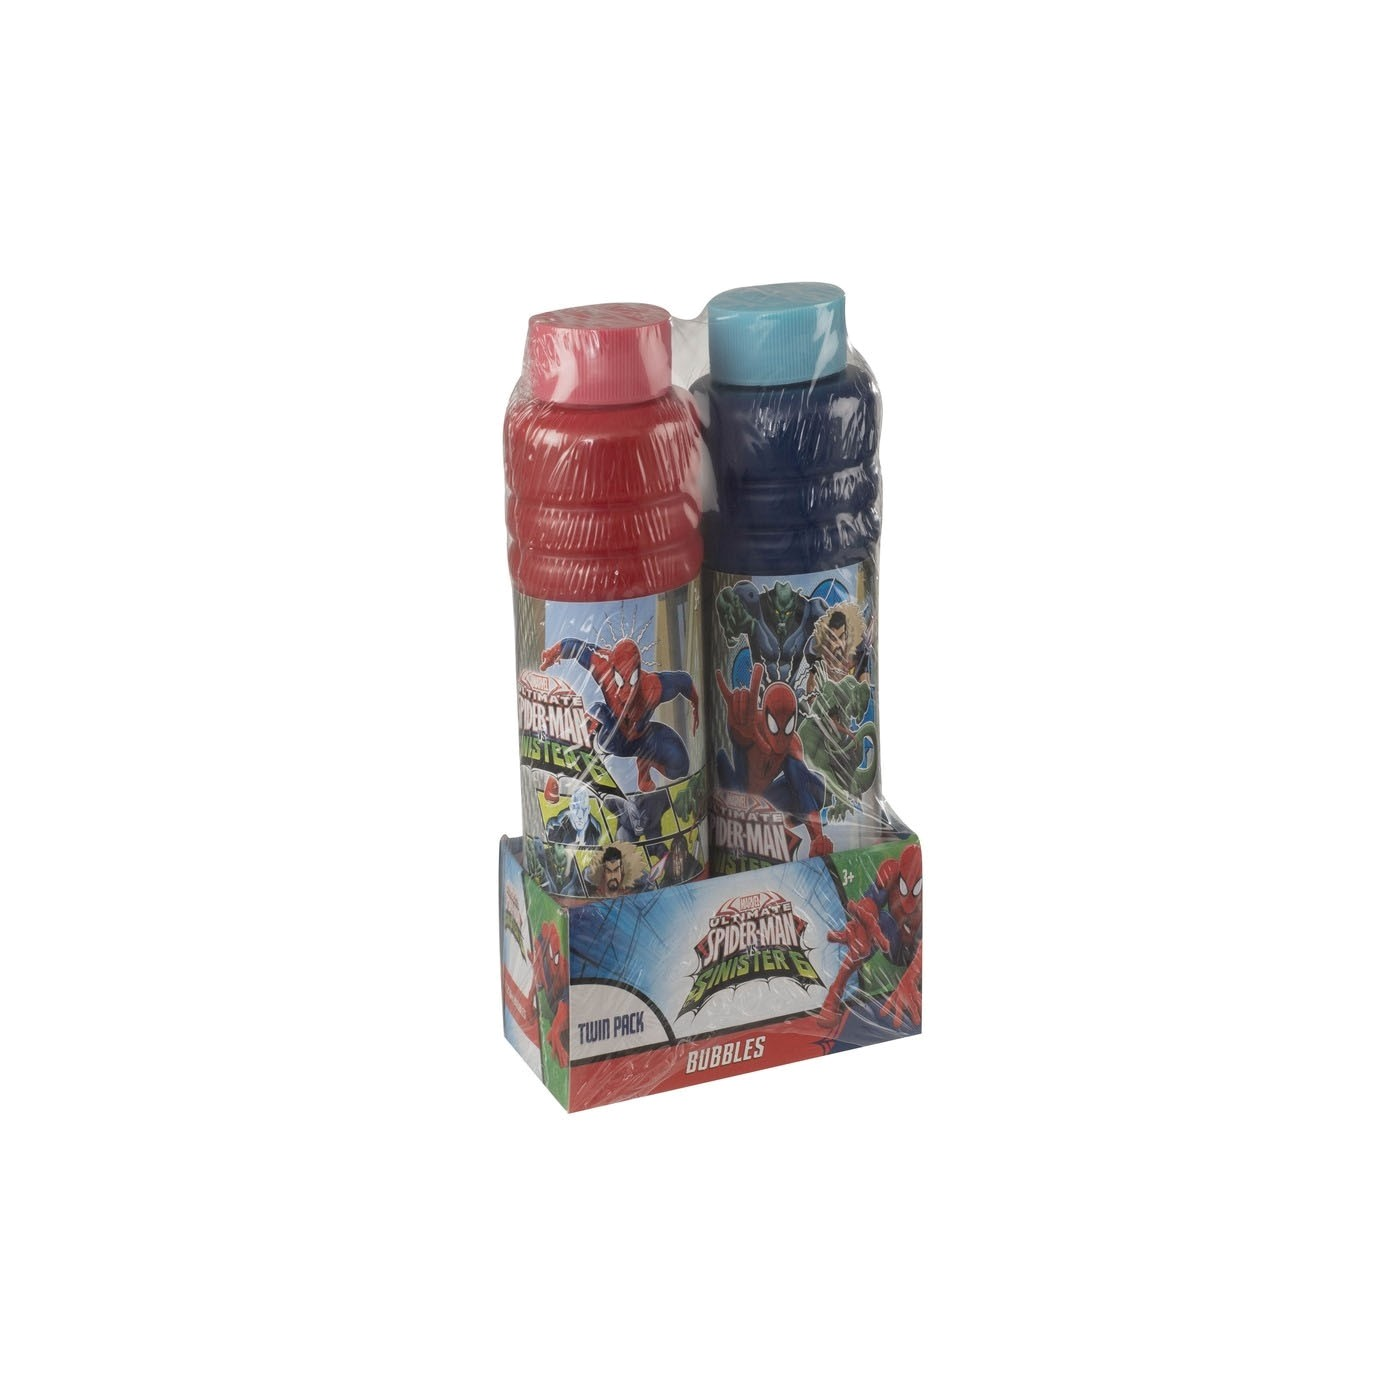 SPIDER-MAN BUBBLE TWIN PACK